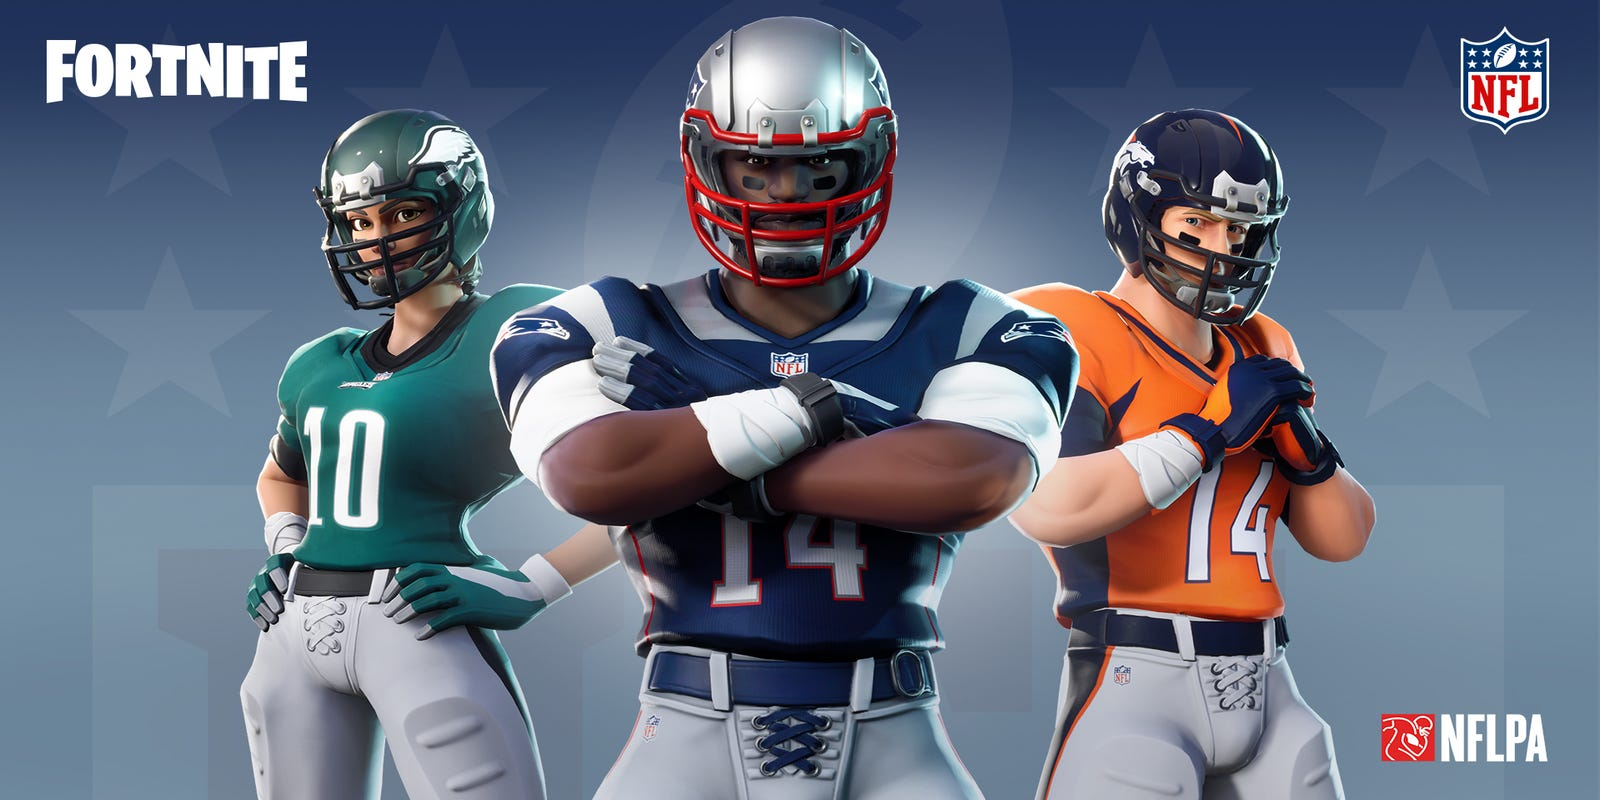 Fortnite Adds Nfl Uniforms And Other Football Gear